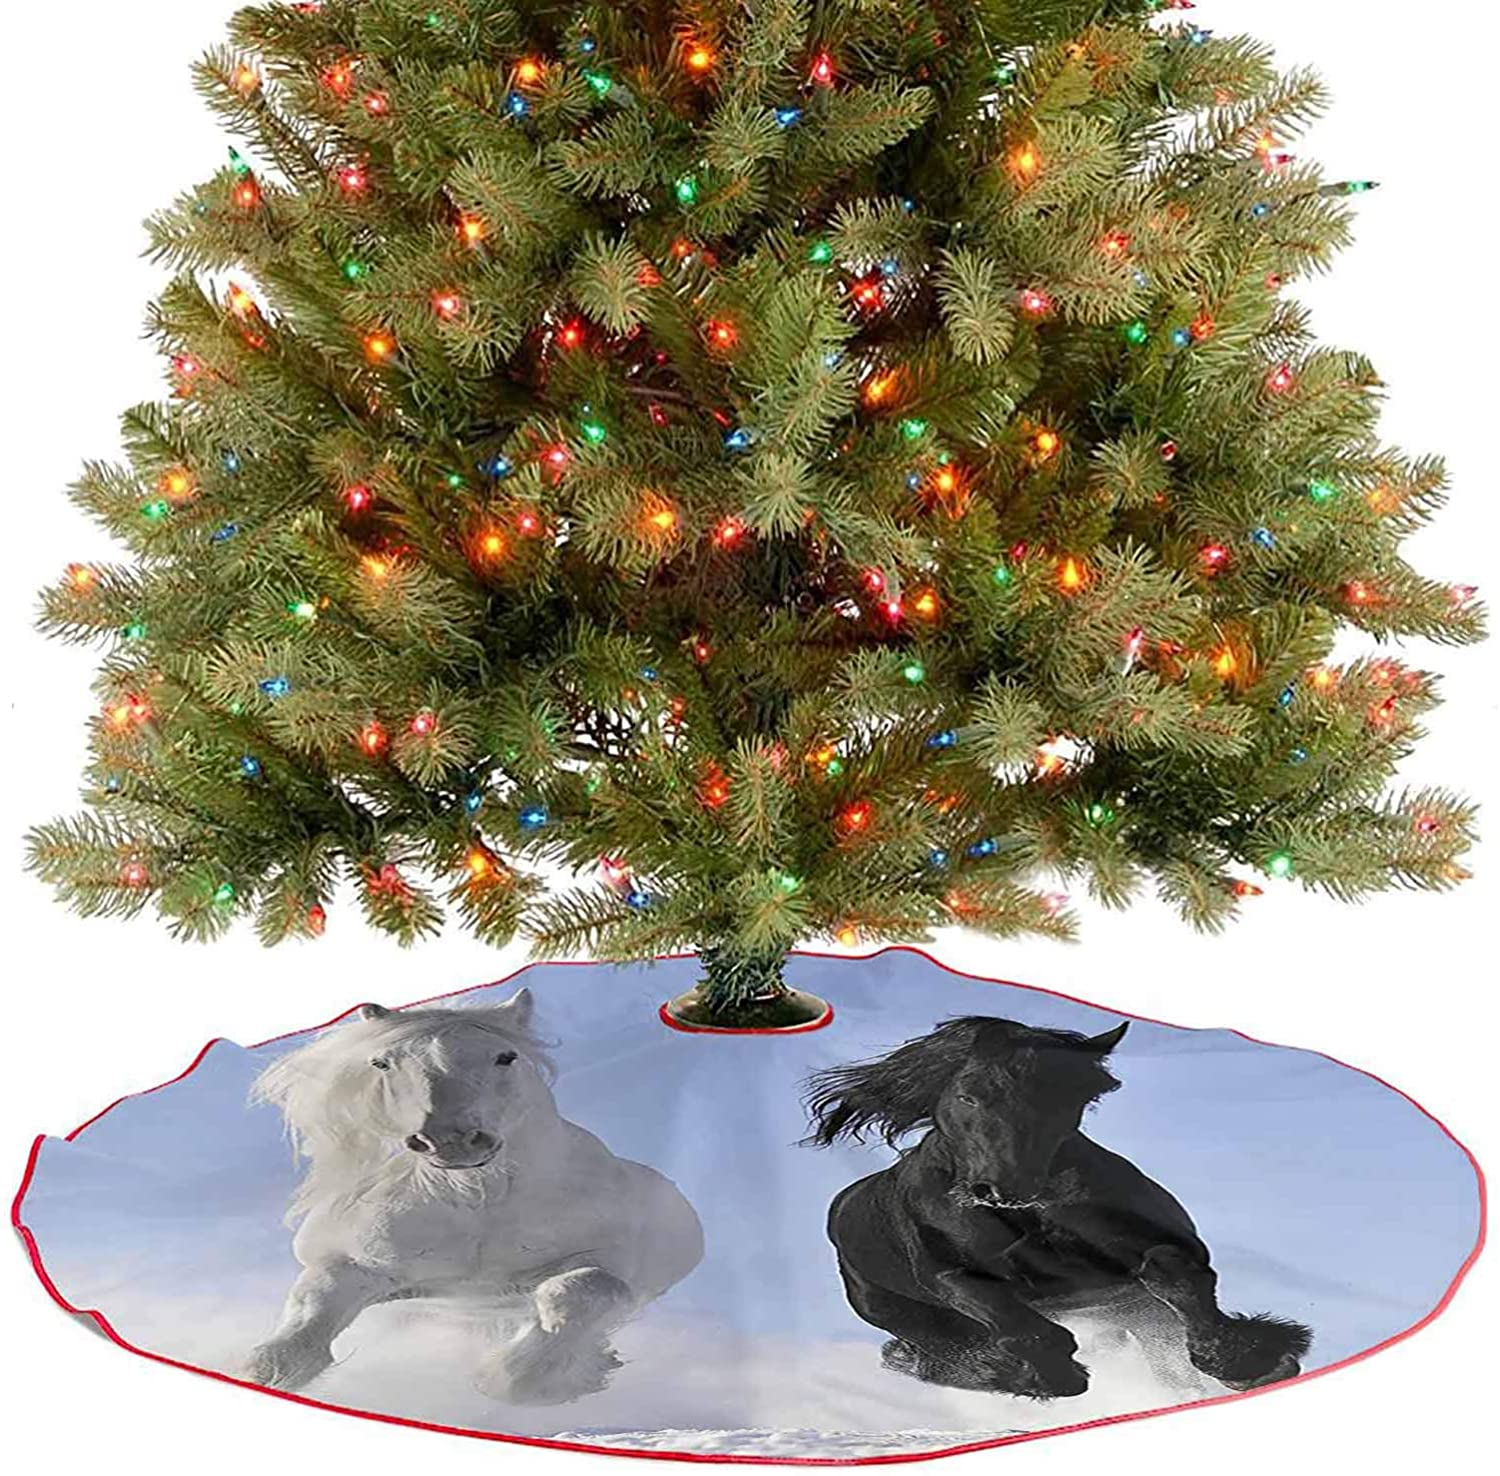 Adorise Tree Skirt Decor Competing Racing Black and White Horses on The Snow Good and Evil Traditional Christmas Tree Mat for Holiday Party - 48 Inch